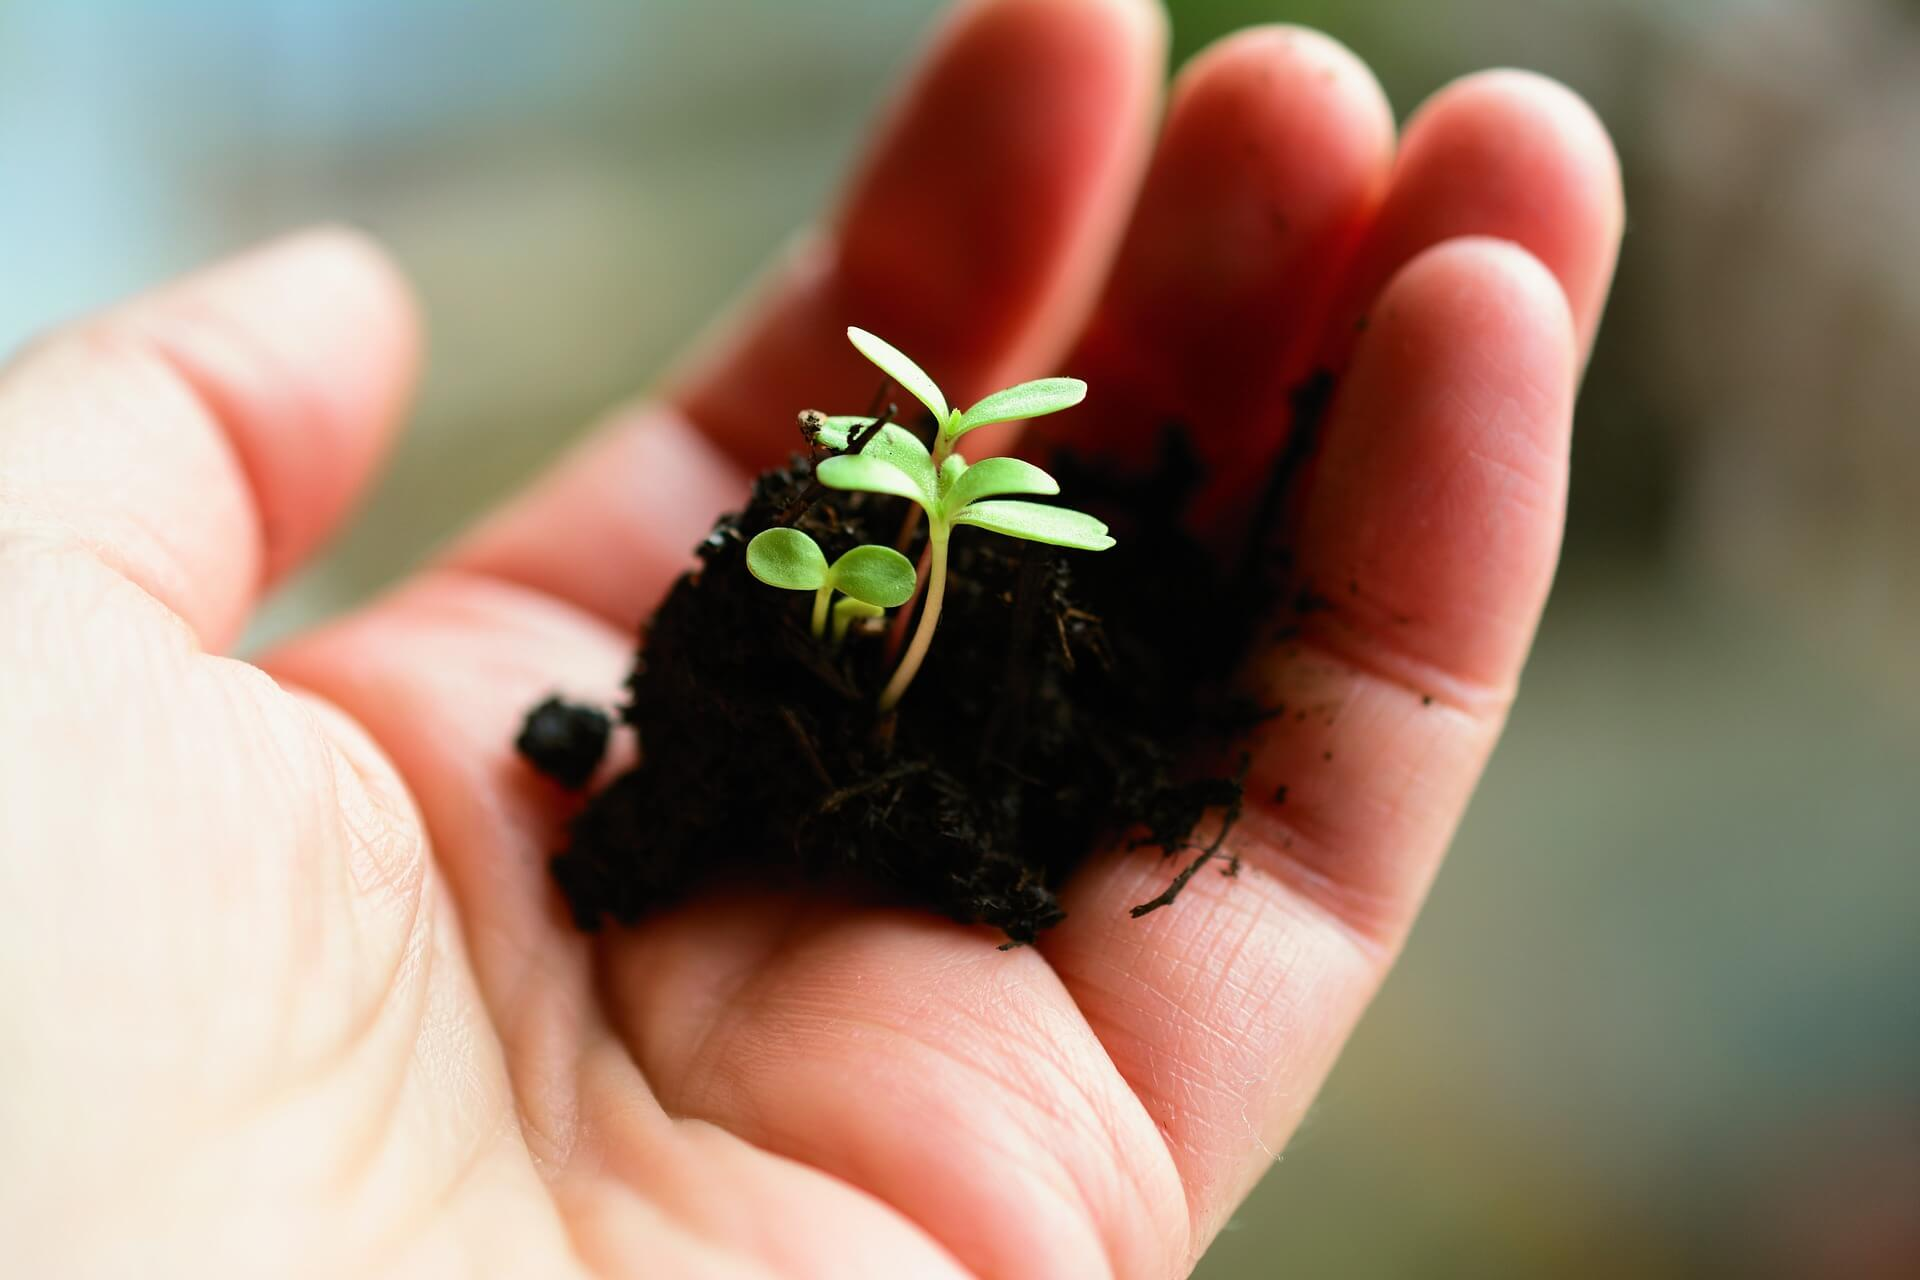 a hand holding a small seedling